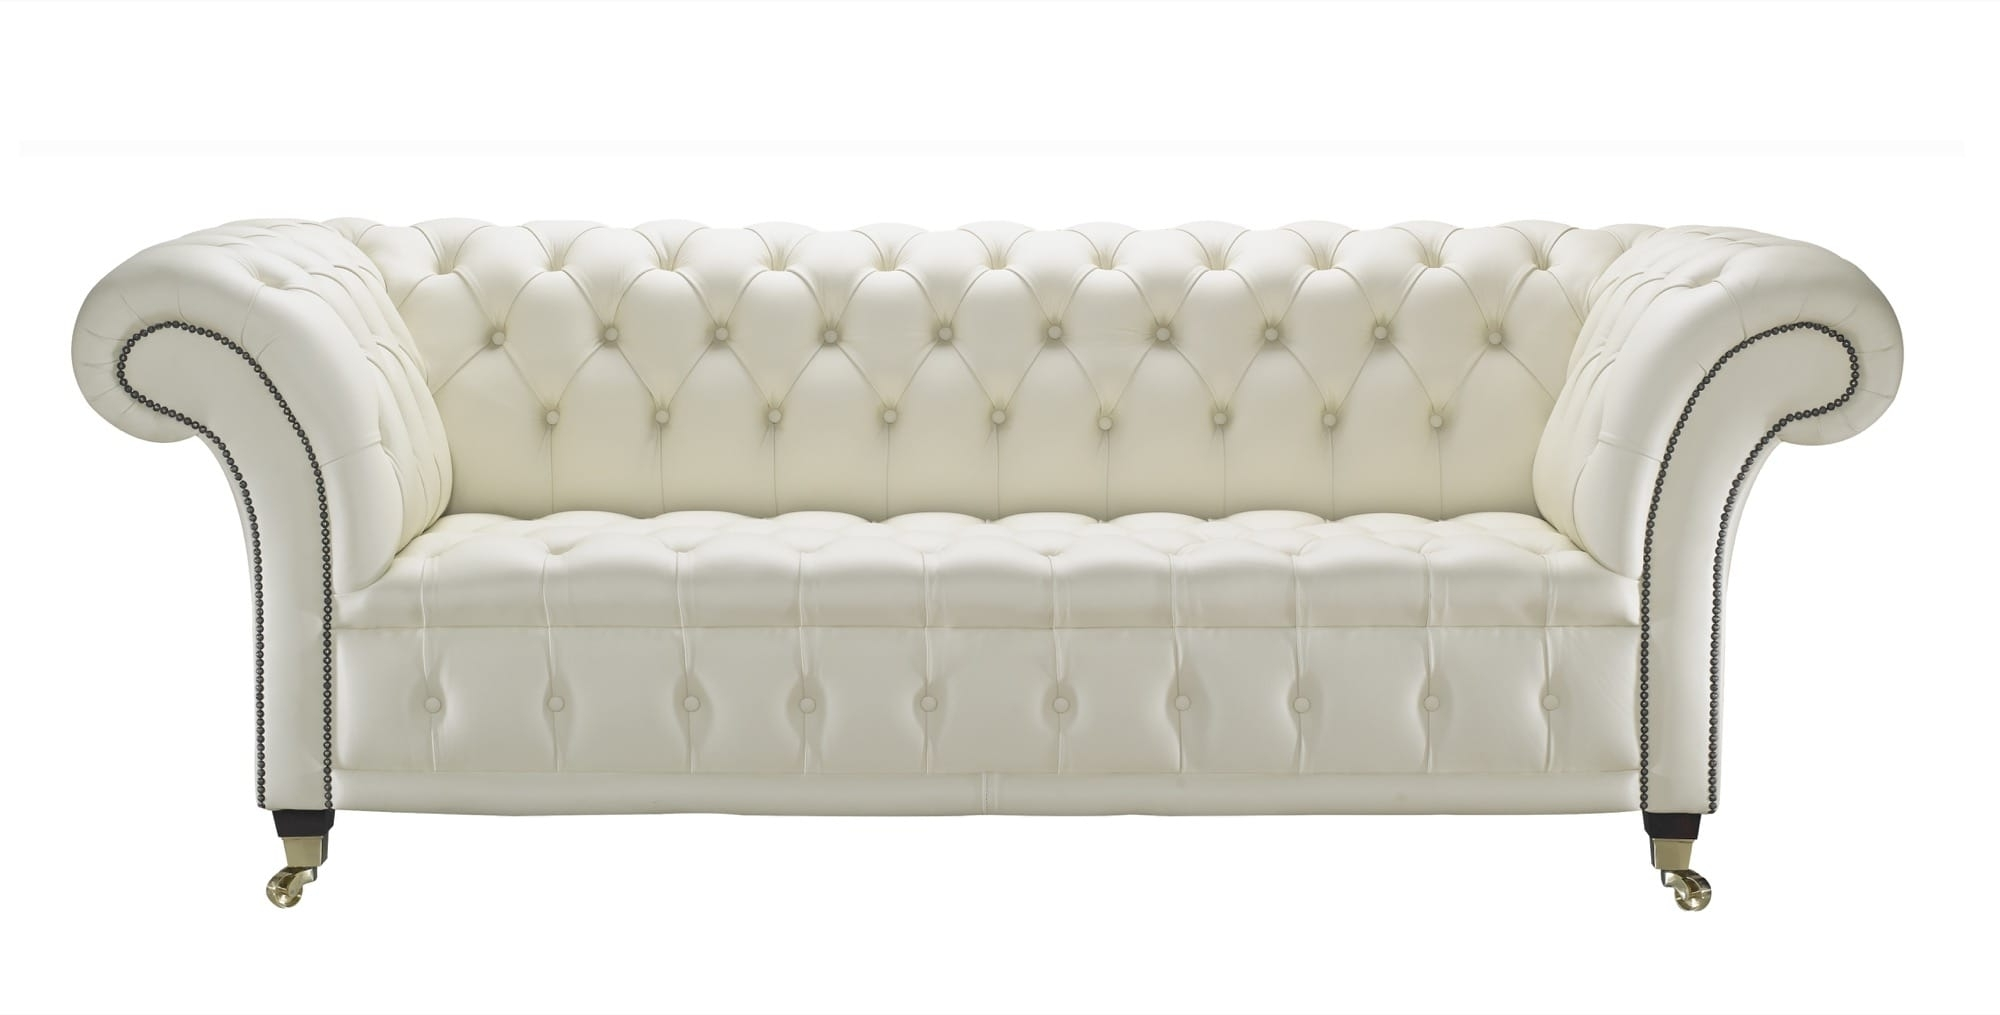 Cream Leather Chesterfield Sofa, Handcrafted In The Uk Inside Most Recent Leather Chesterfield Sofas (View 4 of 15)